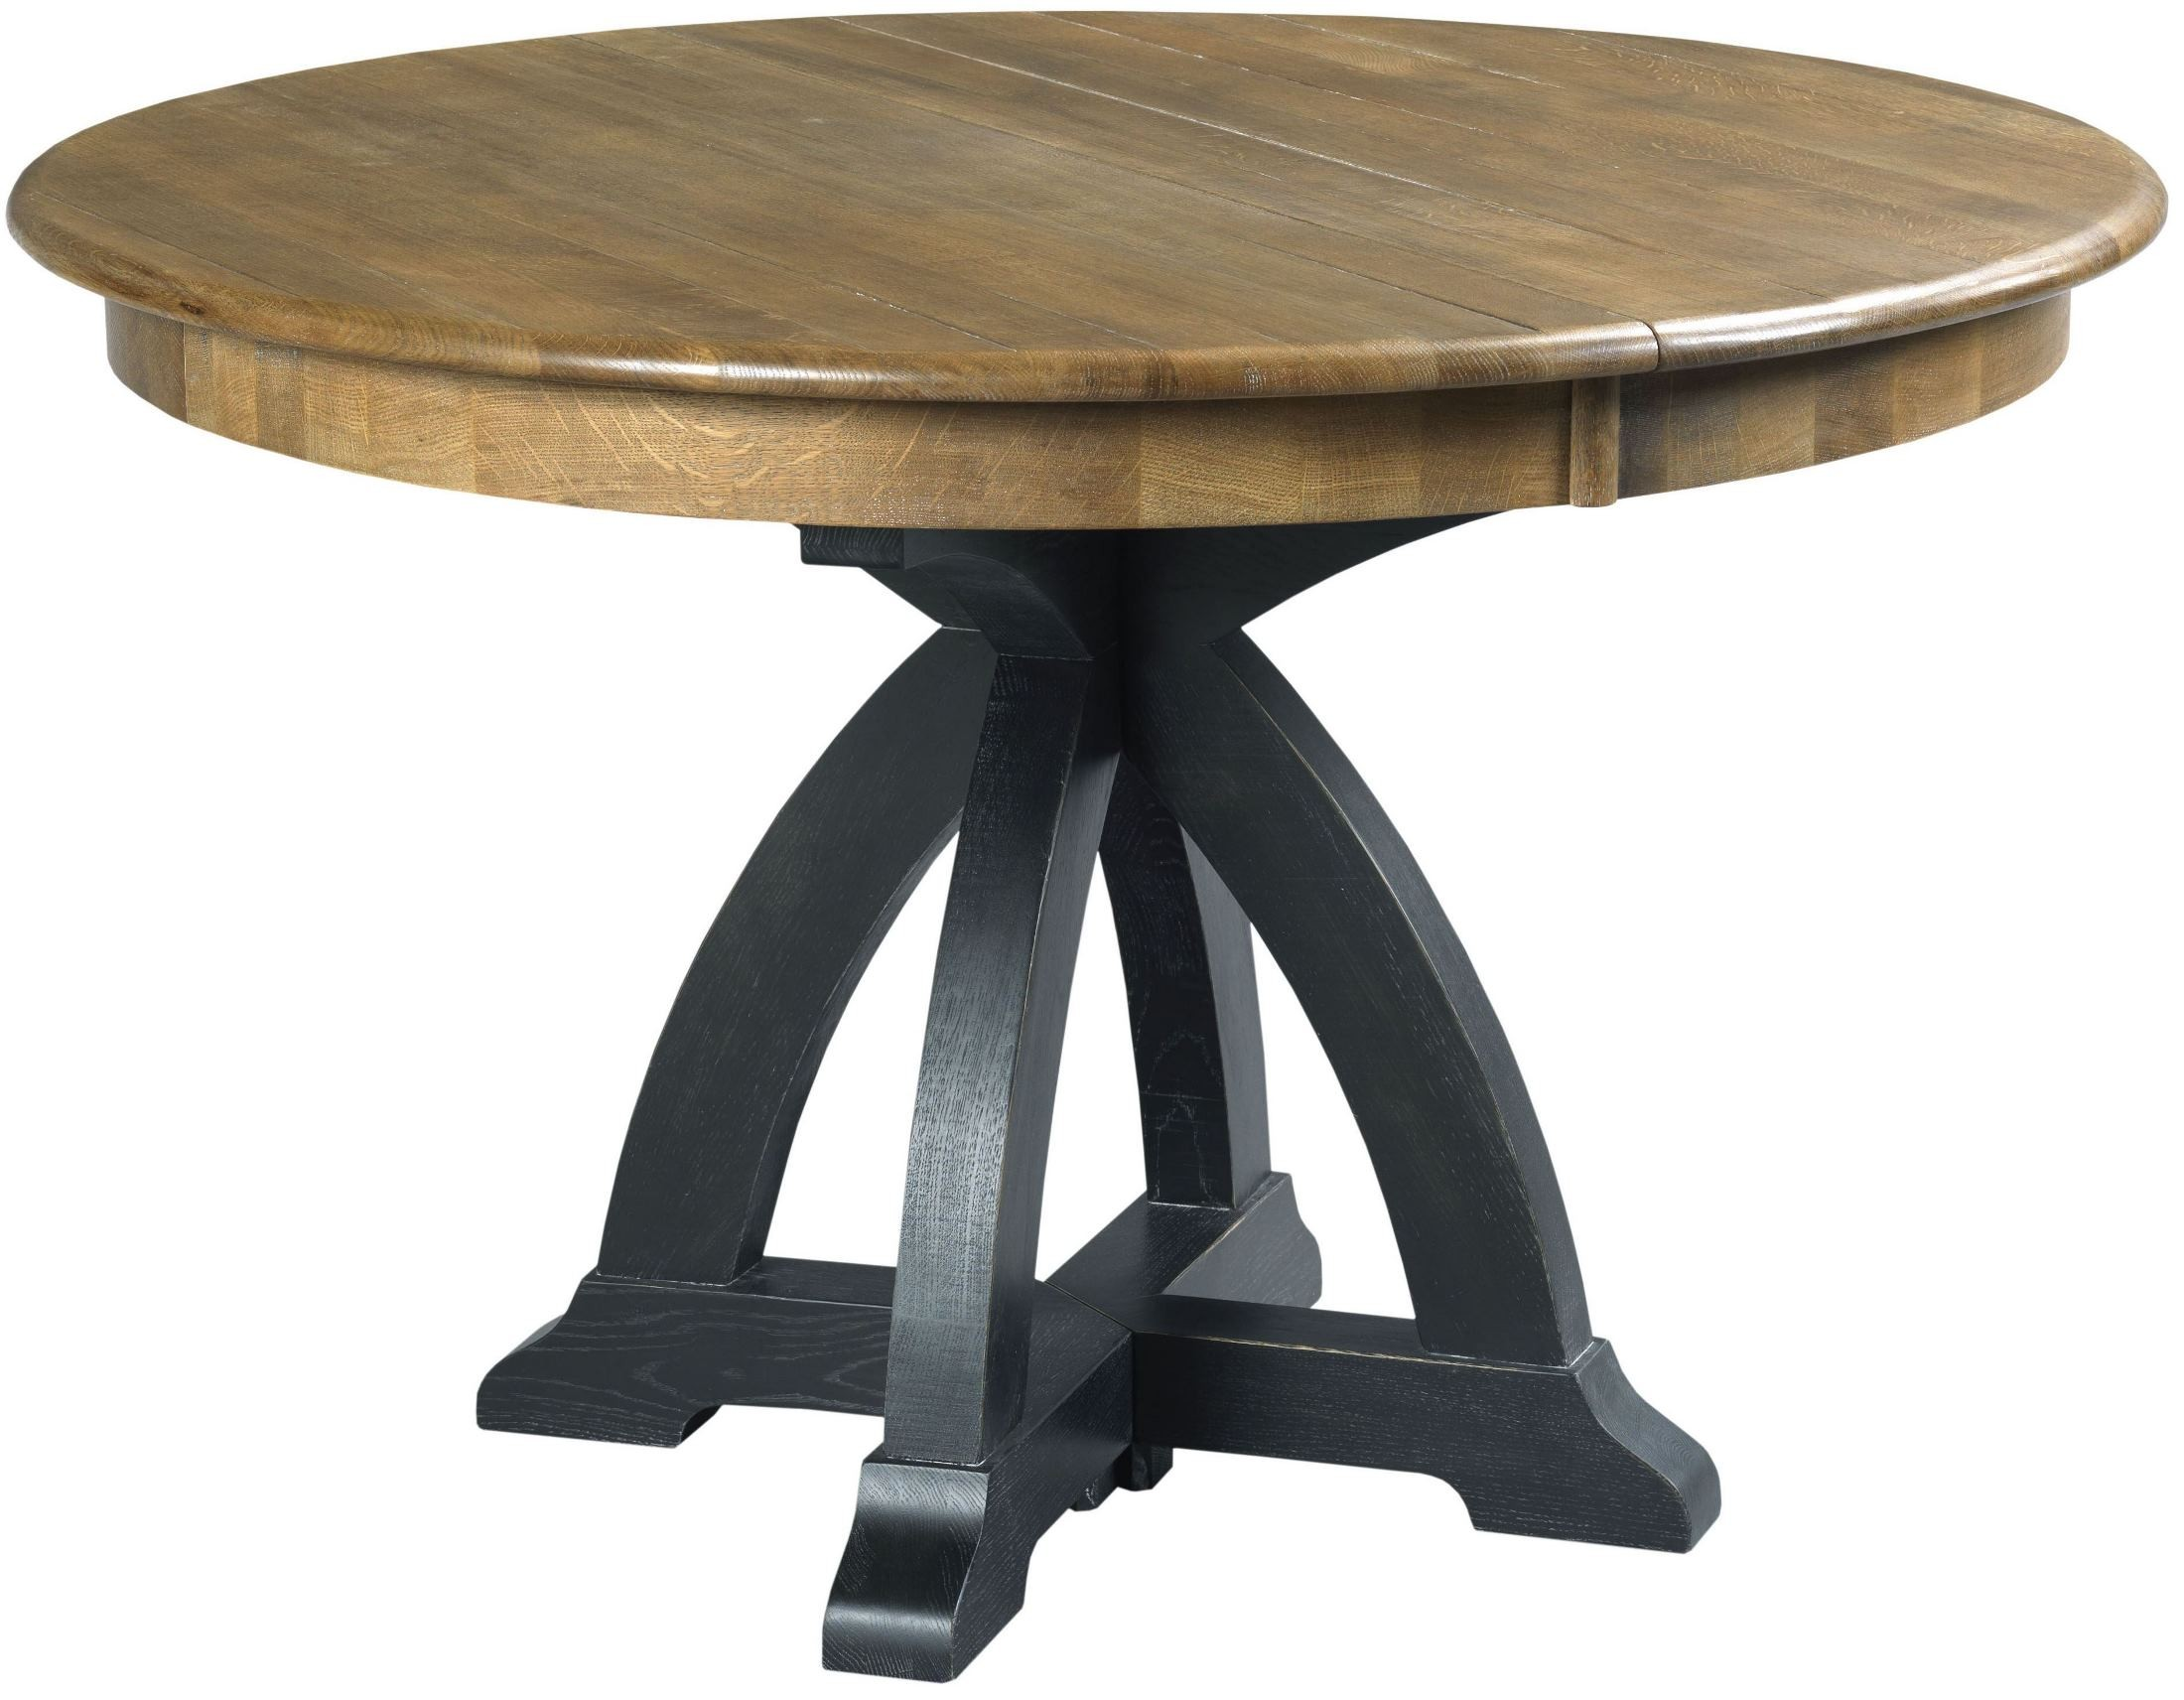 Stone ridge extendable round dining table from kincaid 72 for Stone dining table